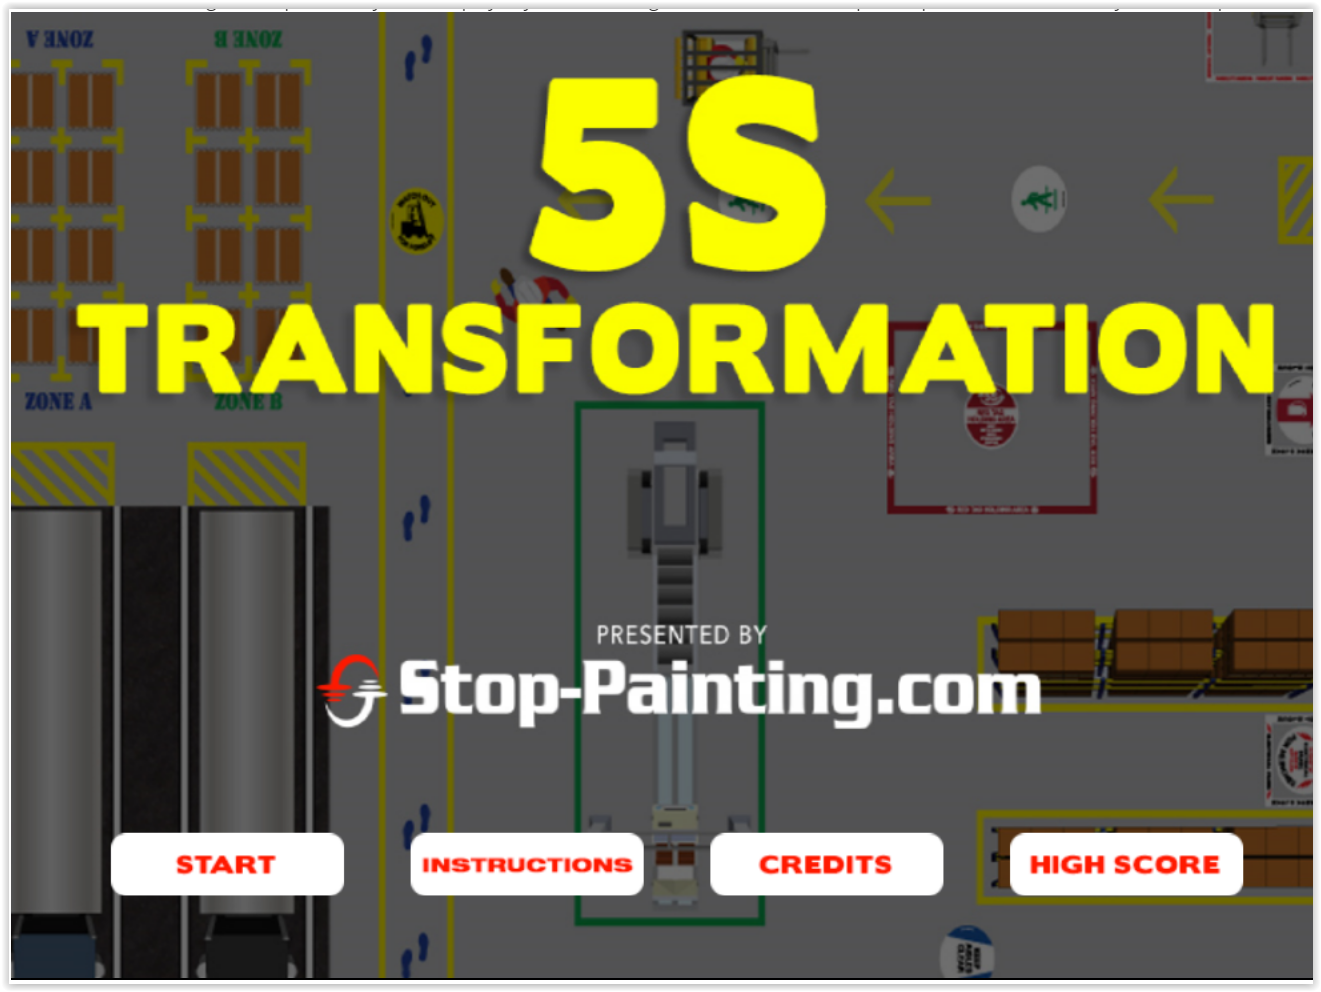 A Lean Journey: 5S Factory Game Teaches the Basic Benefits in a Fun